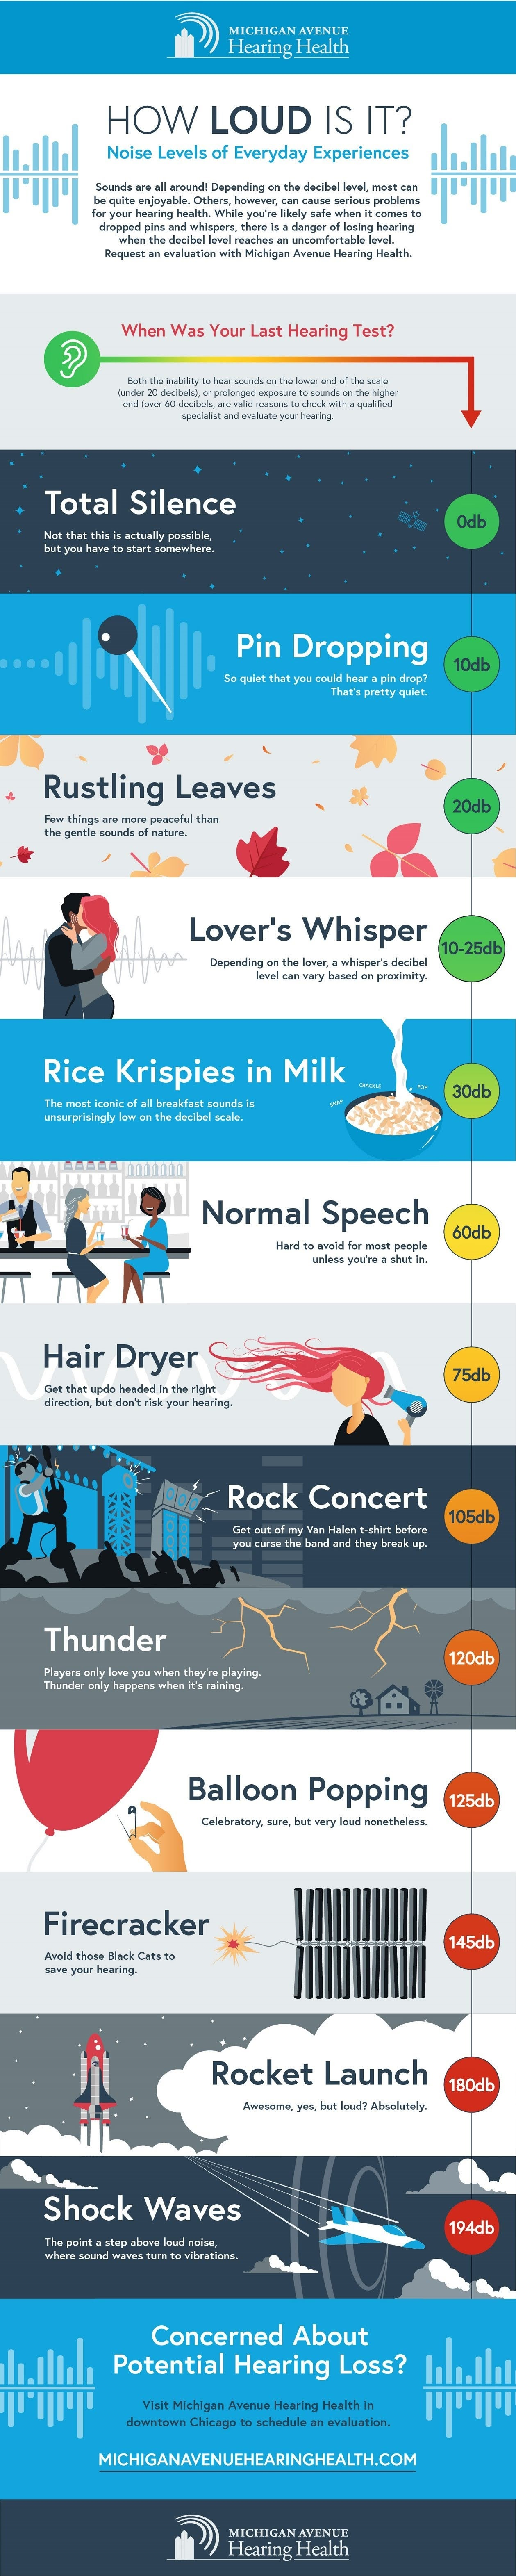 How Loud Is It? #infographic